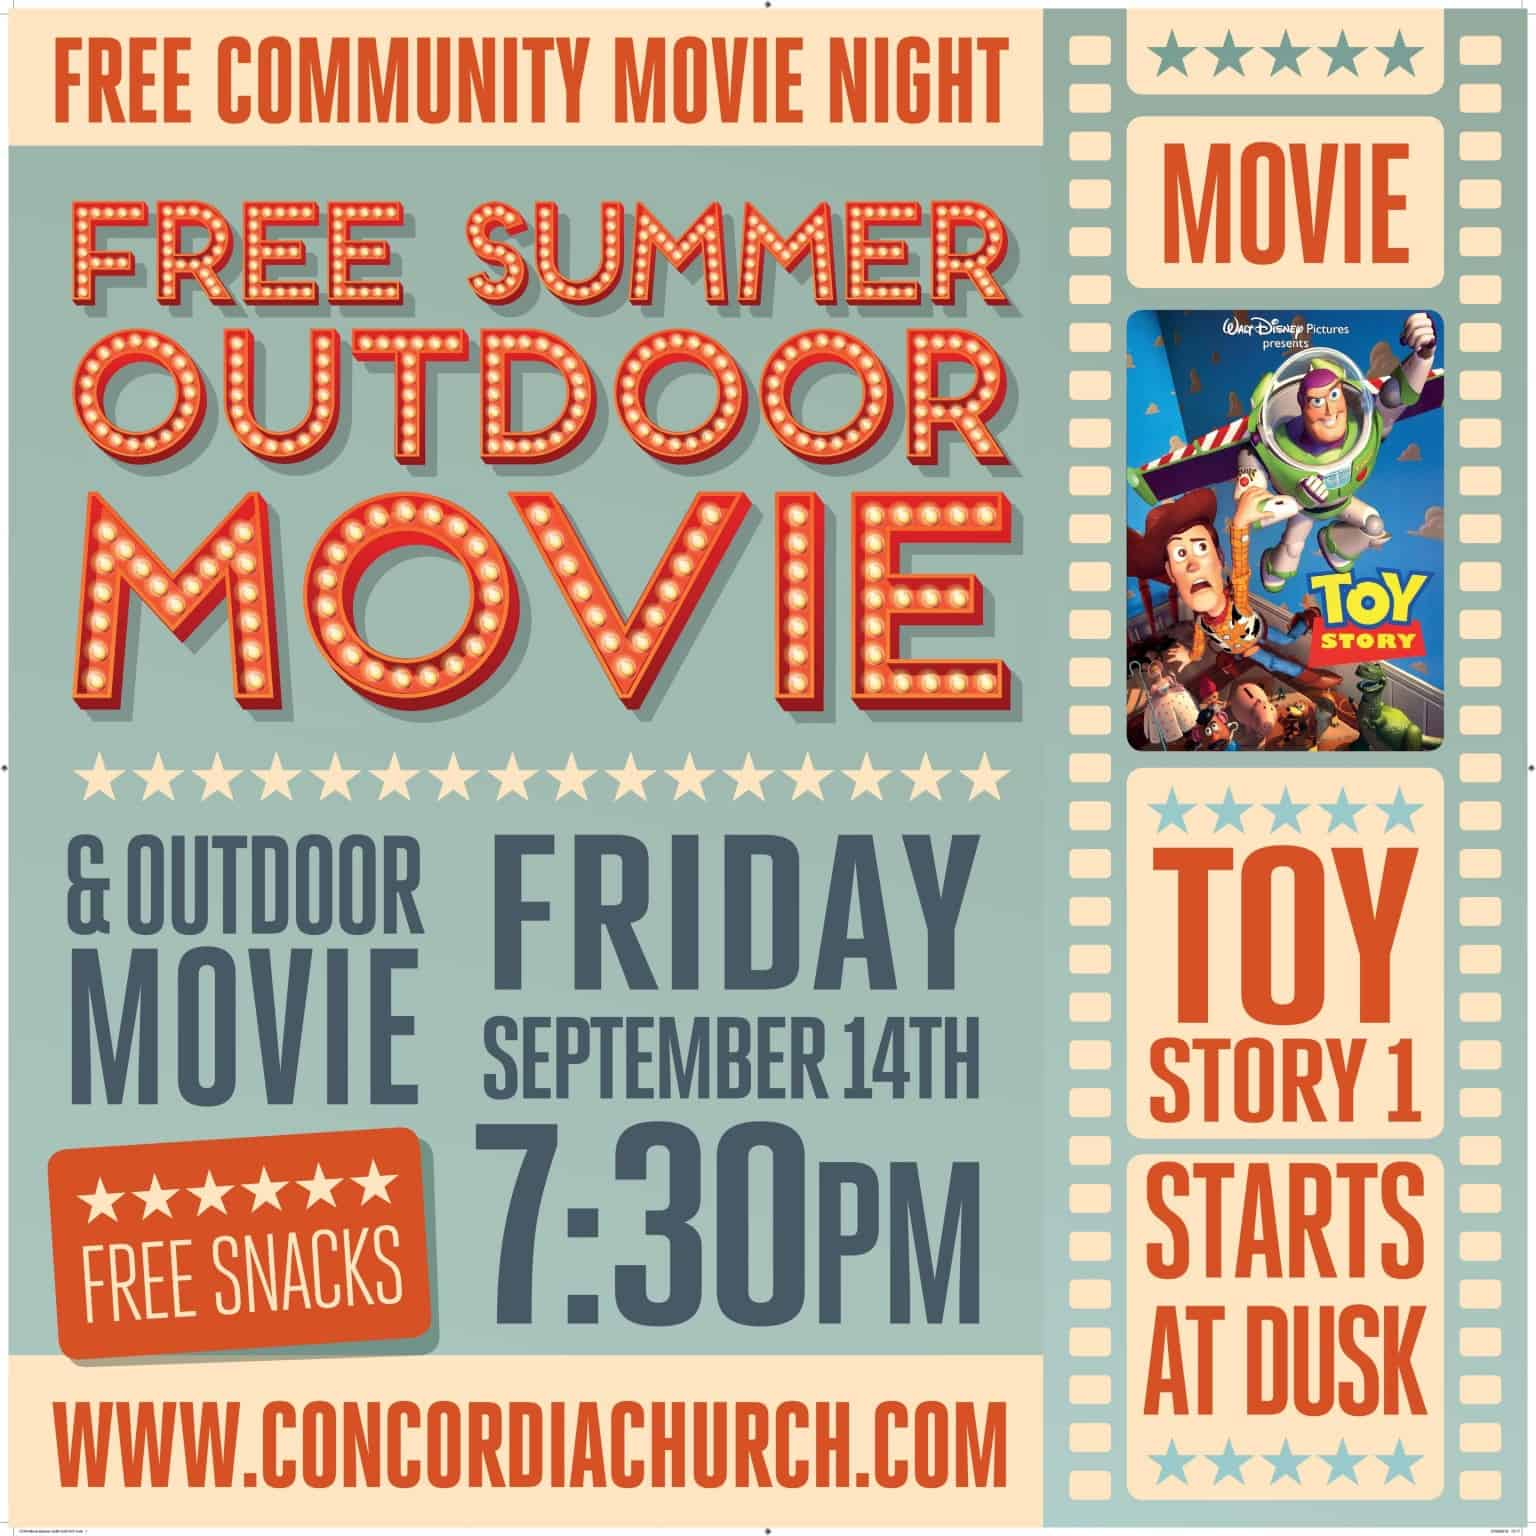 Community Outdoor Movie Toy Story